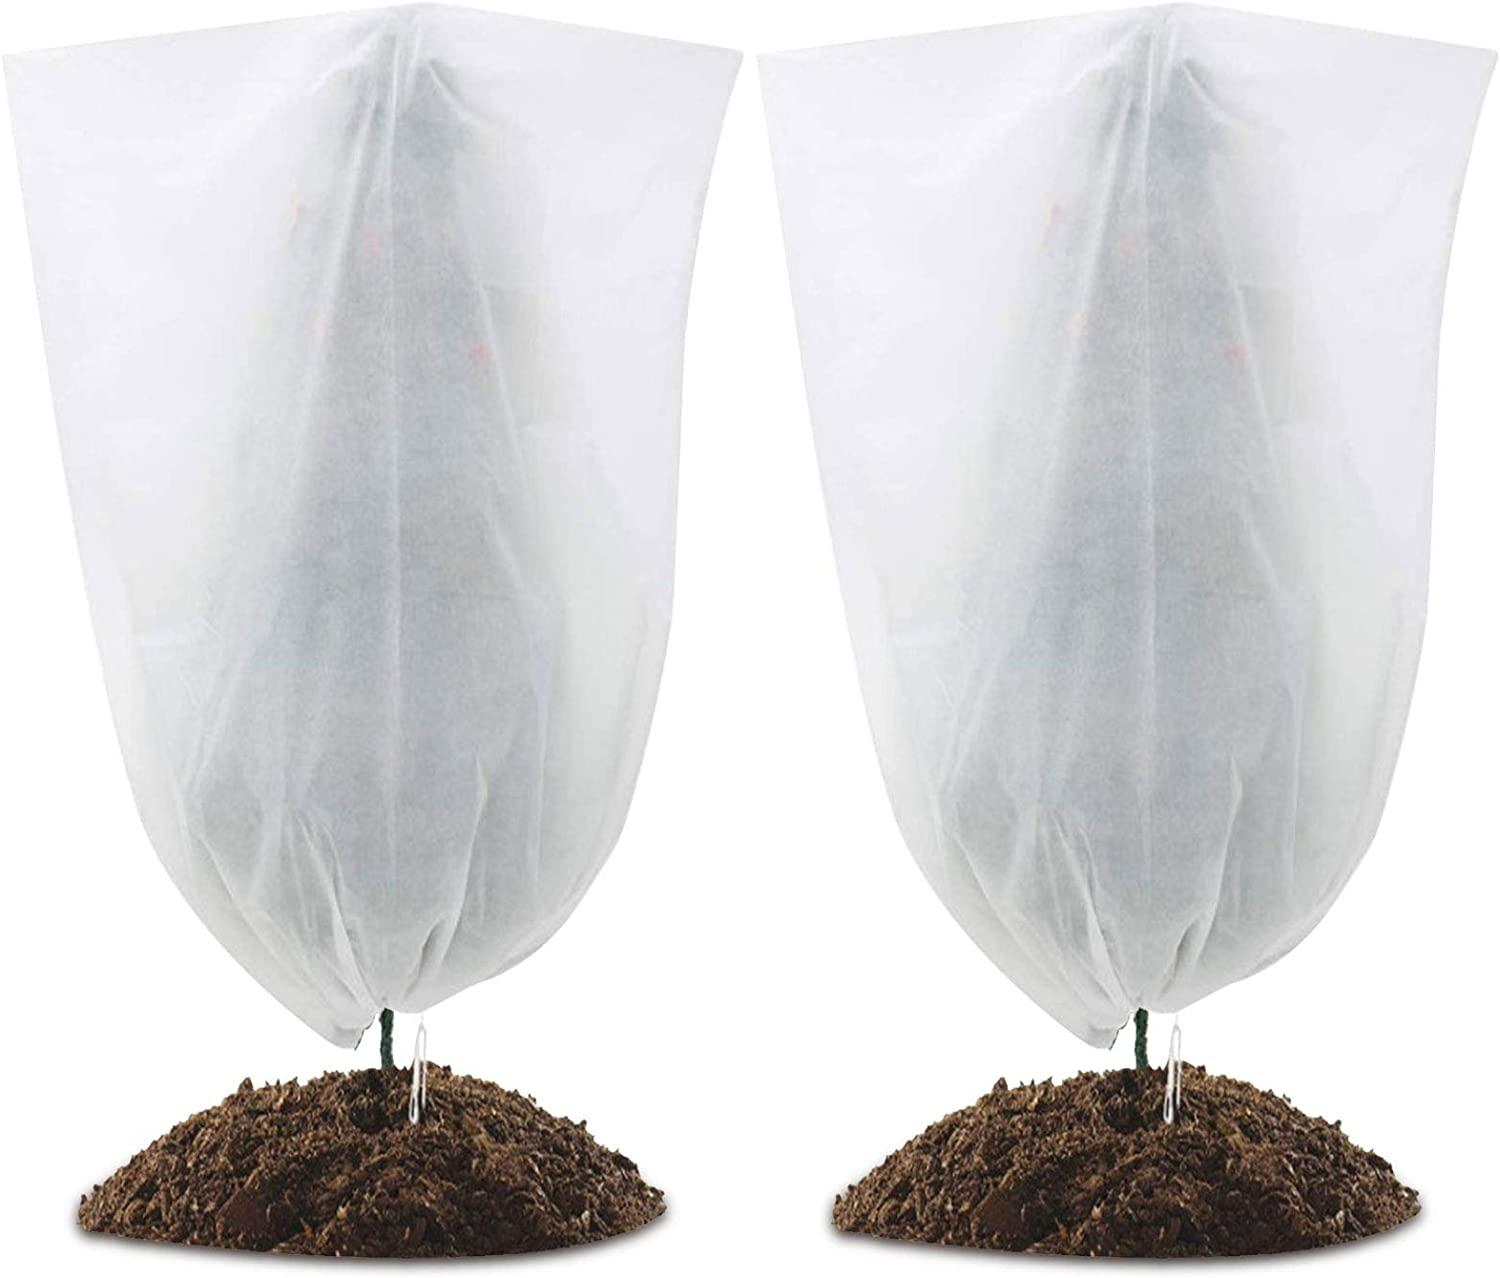 2 Pack Plant Frost Protection Covers, Winter Drawstring Plant Covers,Plant Anti-Freeze Jacket for Cold Weather Protection & Plant Growth (47.24in ×70.87in)